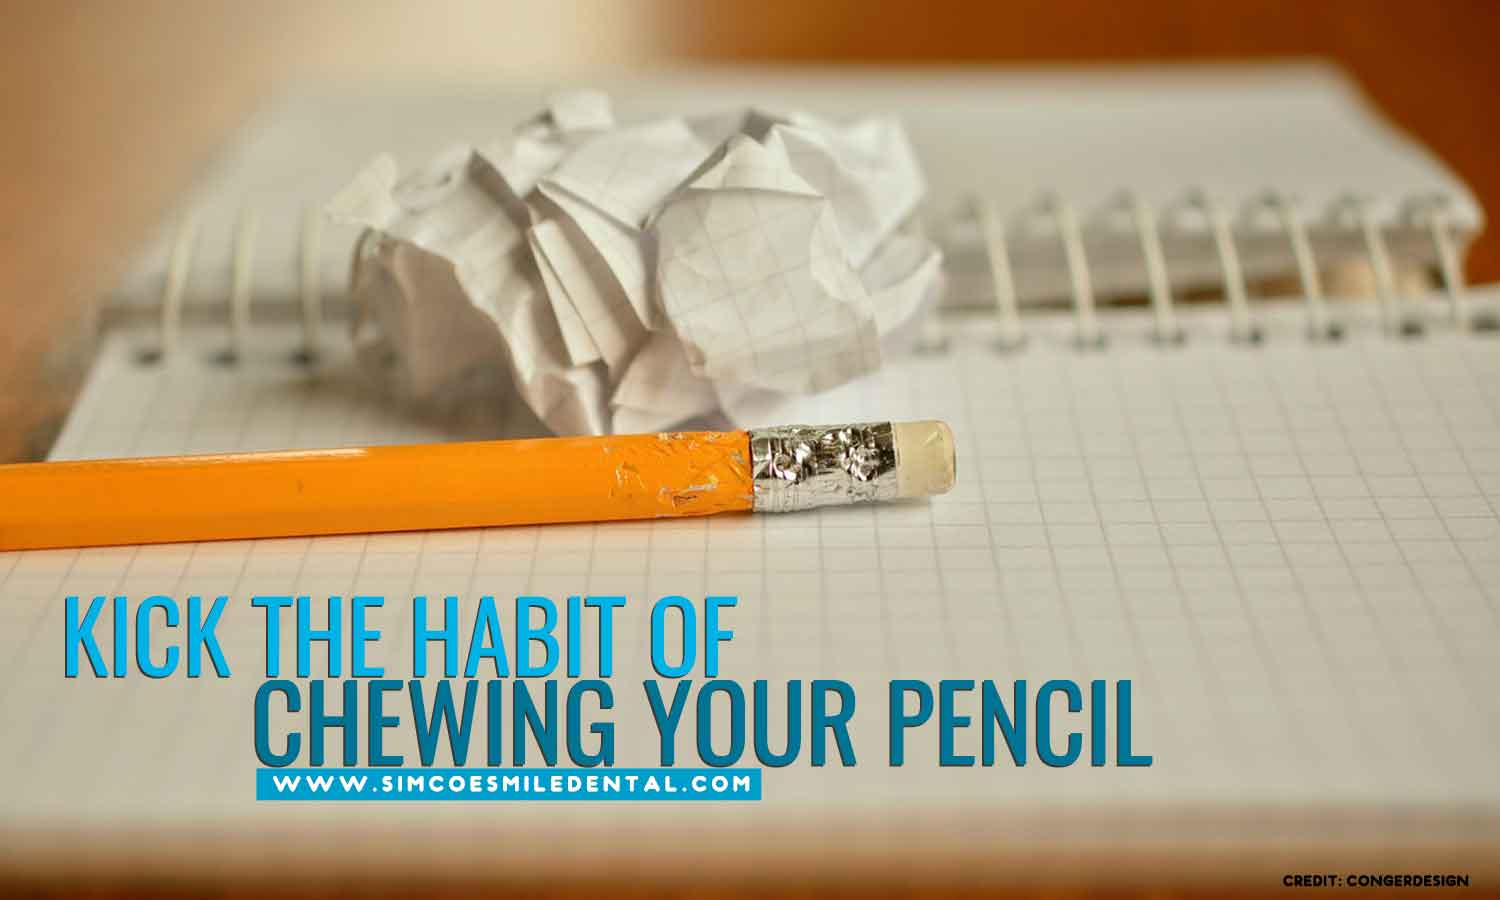 Kick-the-habit-of-chewing-your-pencil 9 Unexpectedly Bad Habits That Can Hurt Your Teeth